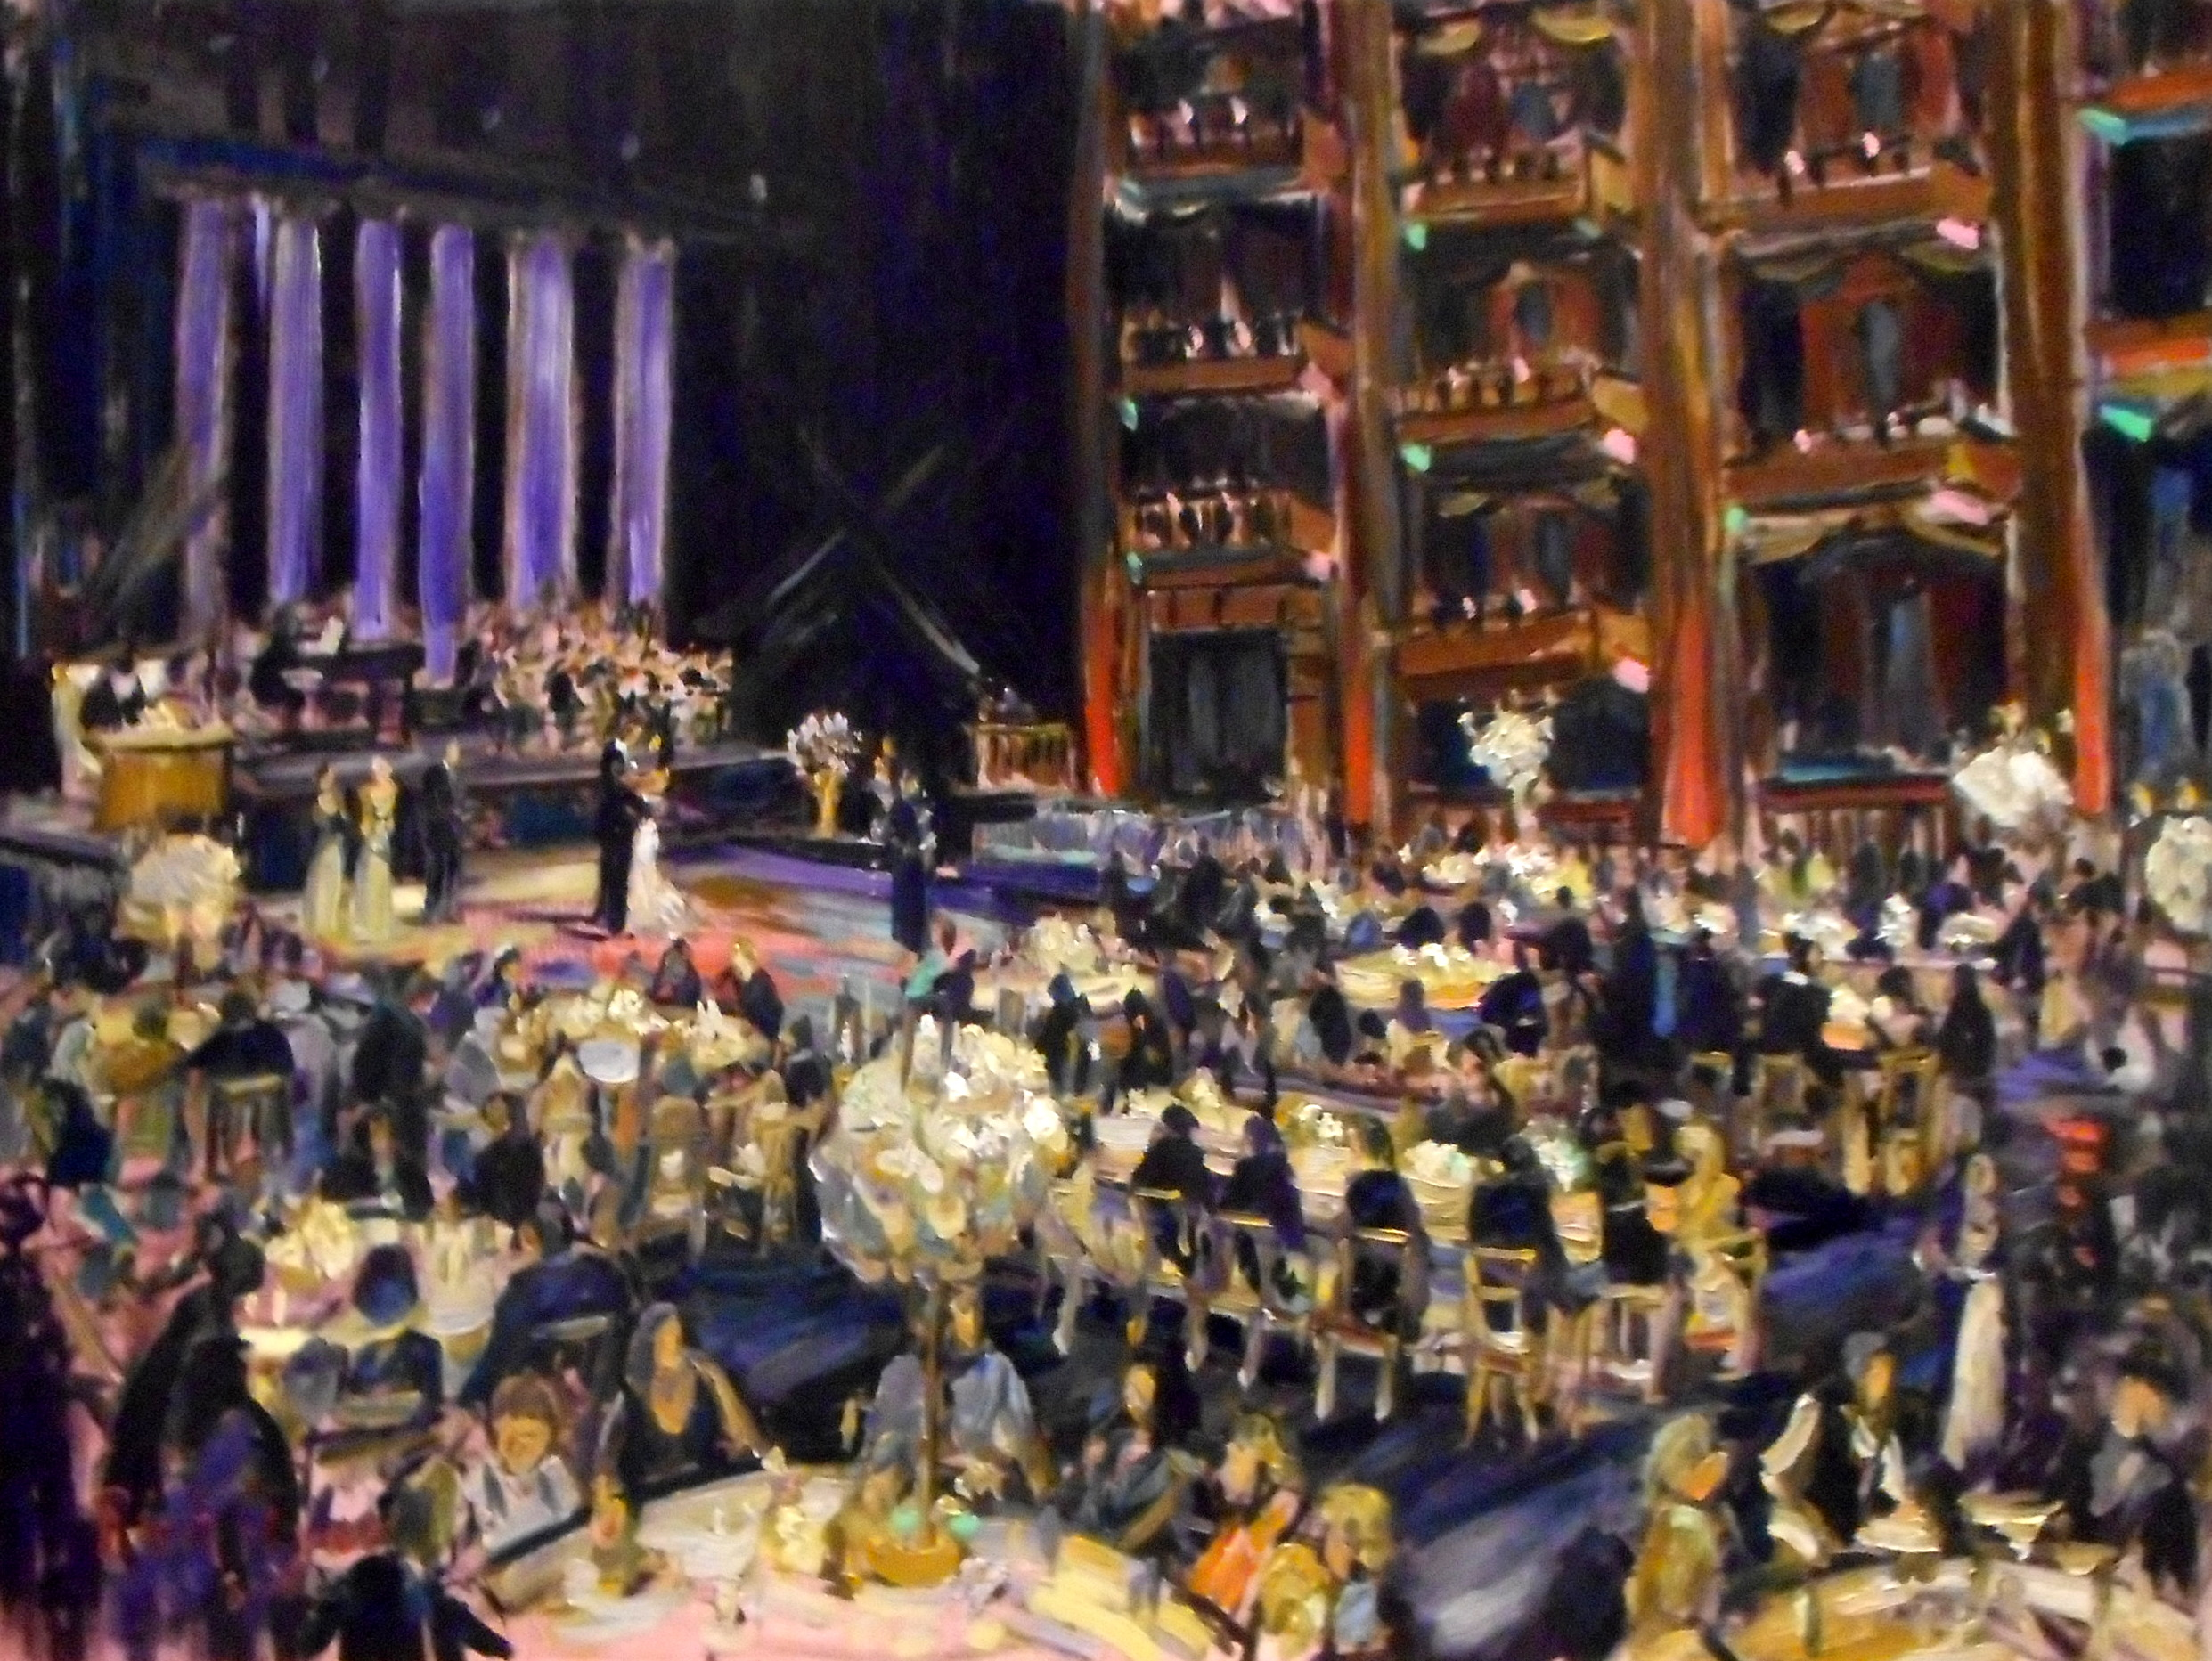 The Wolfe Wedding Cerritos Center For Performing Arts Ca Oil 30 X 40 8 29 15 Rich Flynn